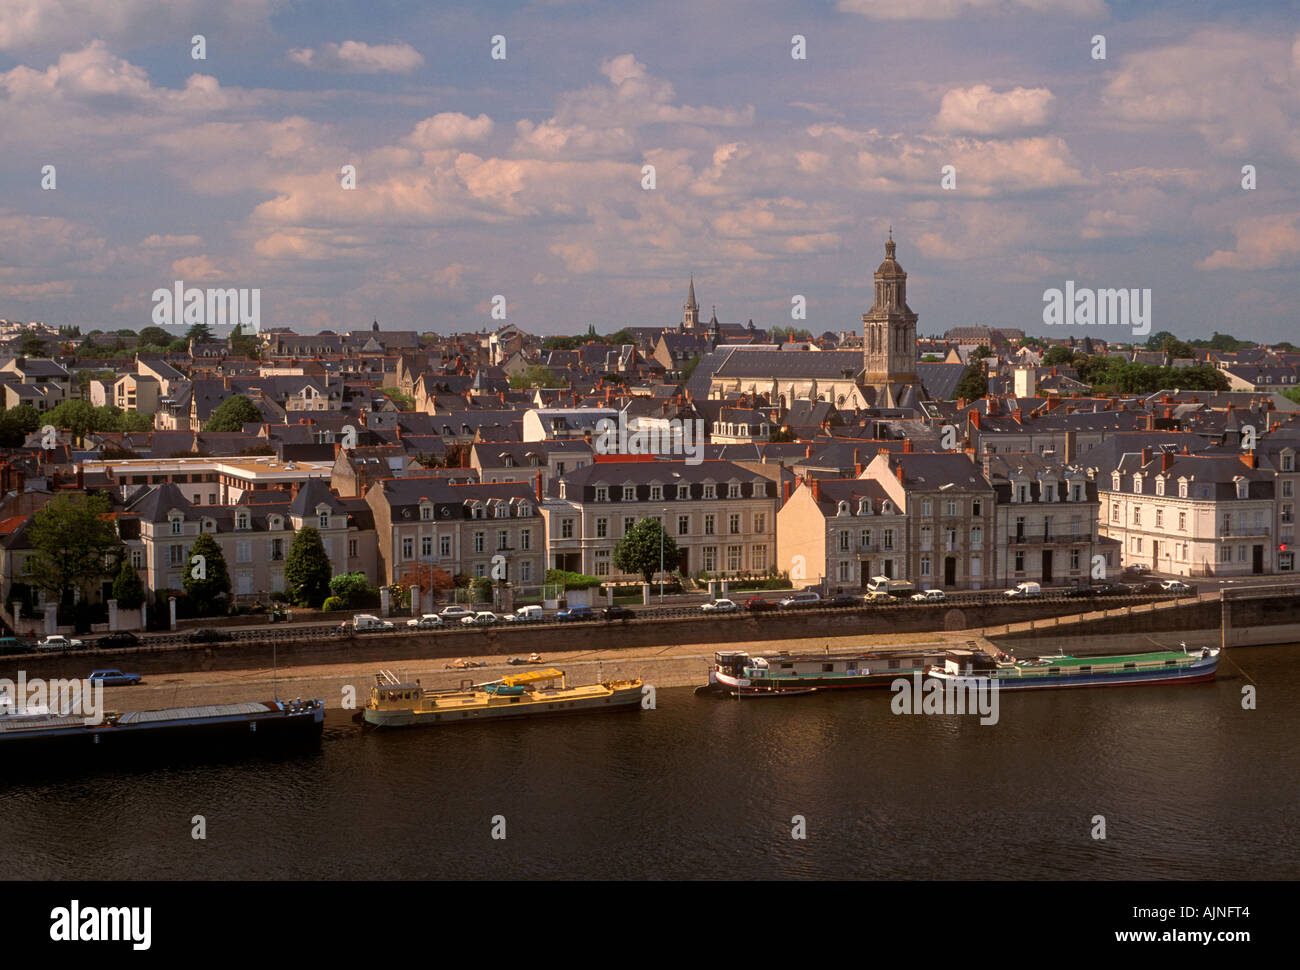 maine river city of angers pays de la loire france europe stock photo royalty free image. Black Bedroom Furniture Sets. Home Design Ideas